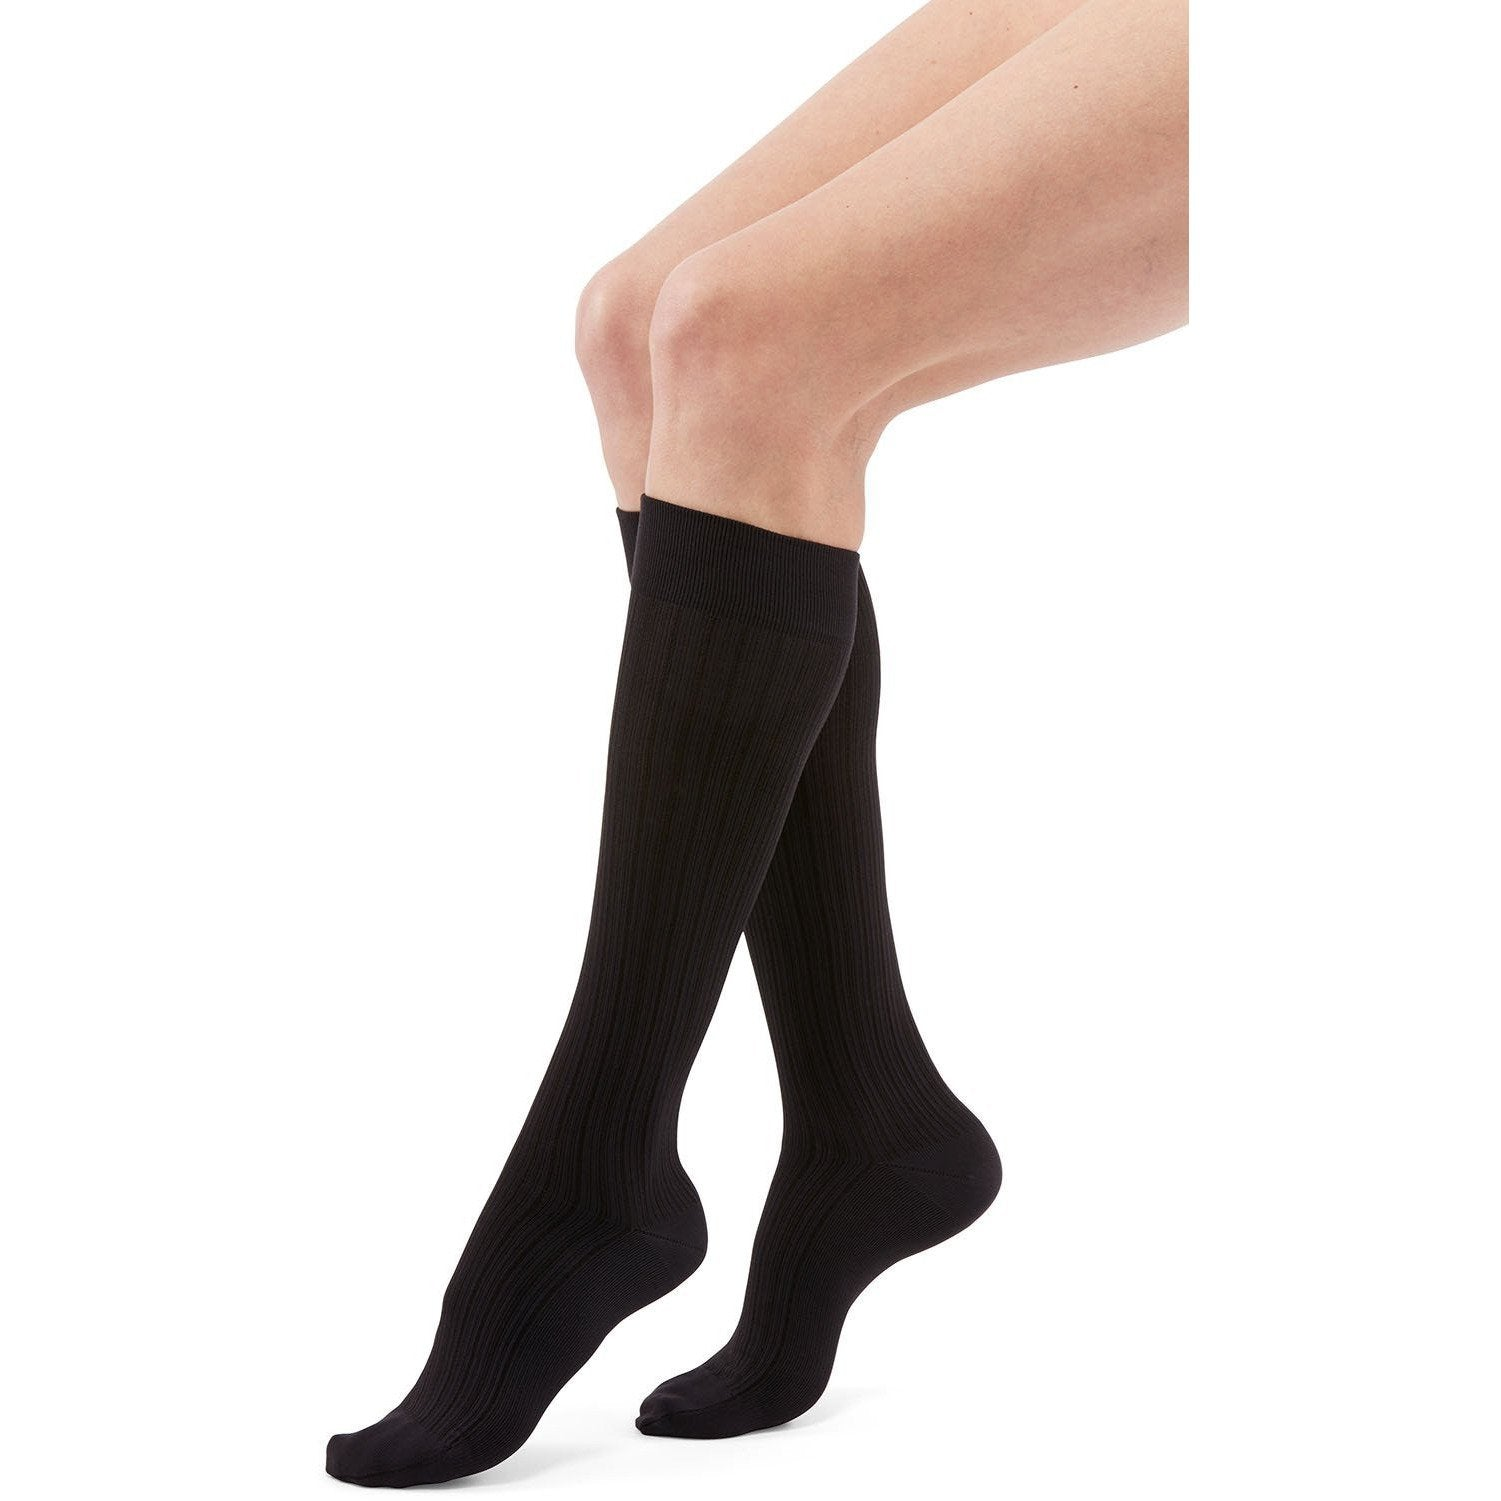 duomed freedom, 20-30 mmHg, Calf High, Closed Toe